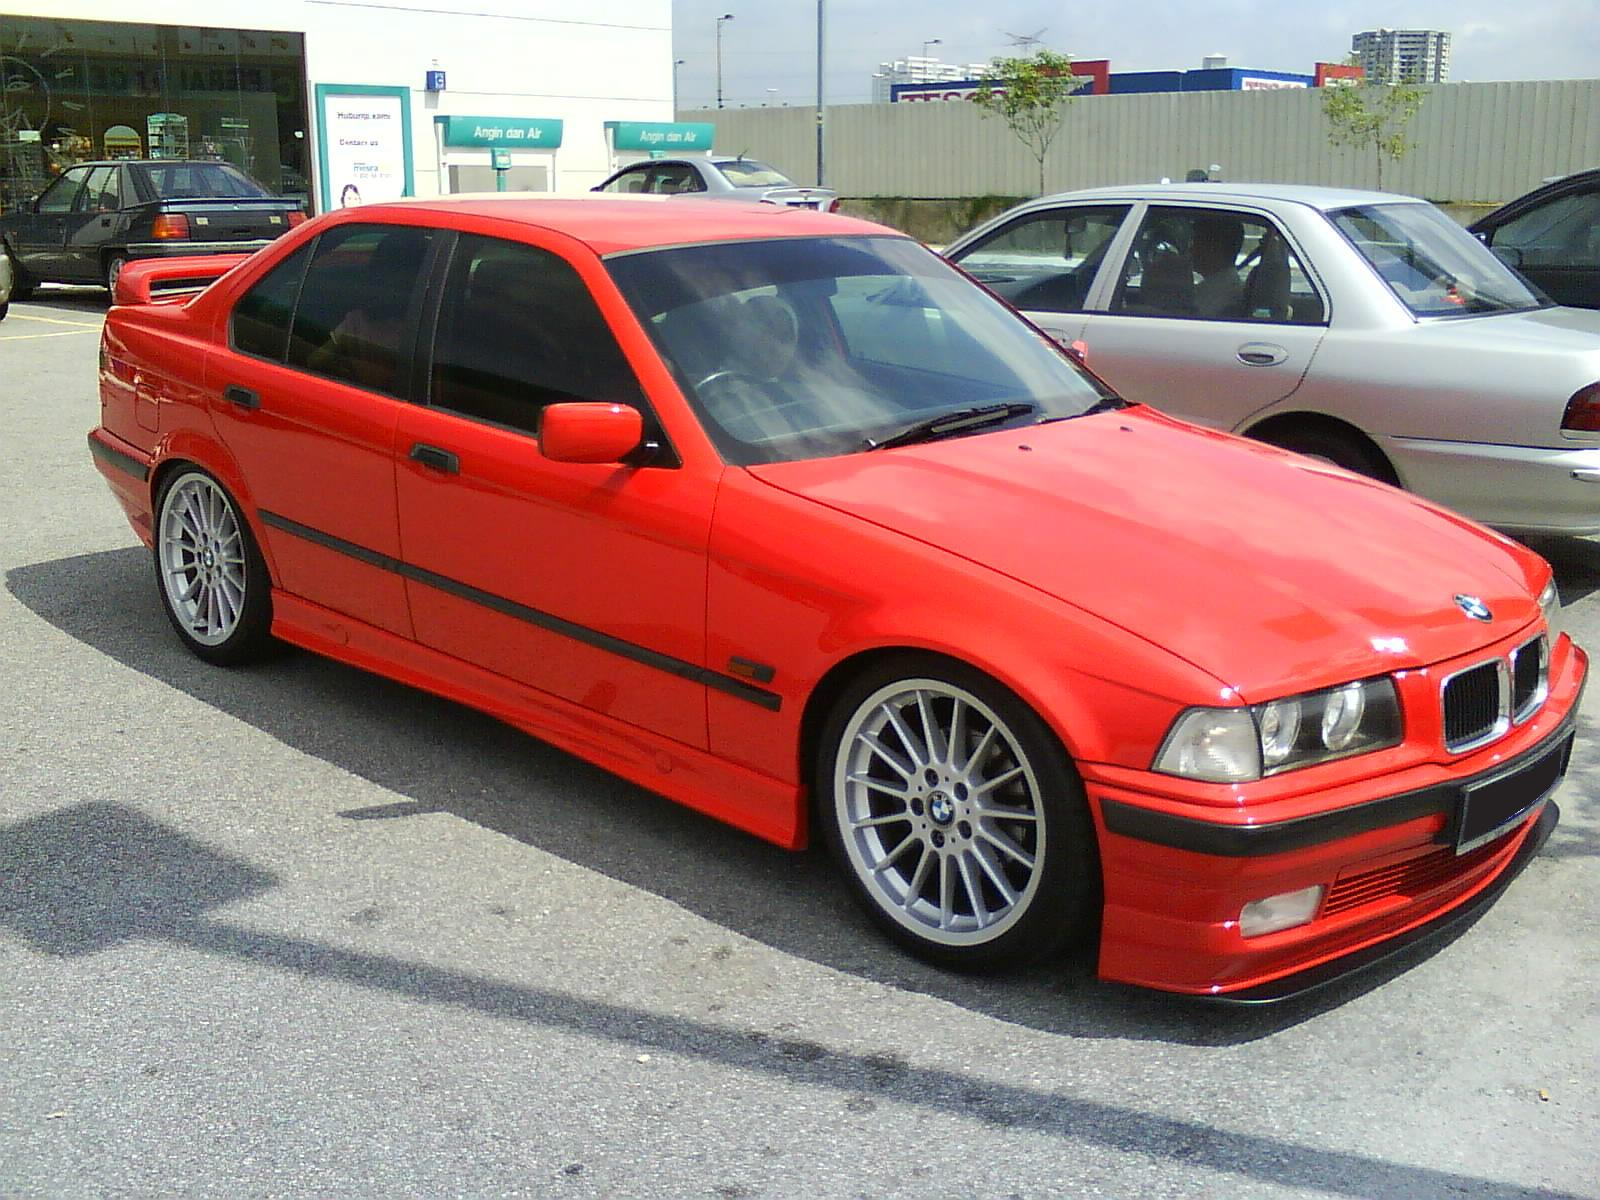 bmw e36 alpina review amazing pictures and images look at the car. Black Bedroom Furniture Sets. Home Design Ideas